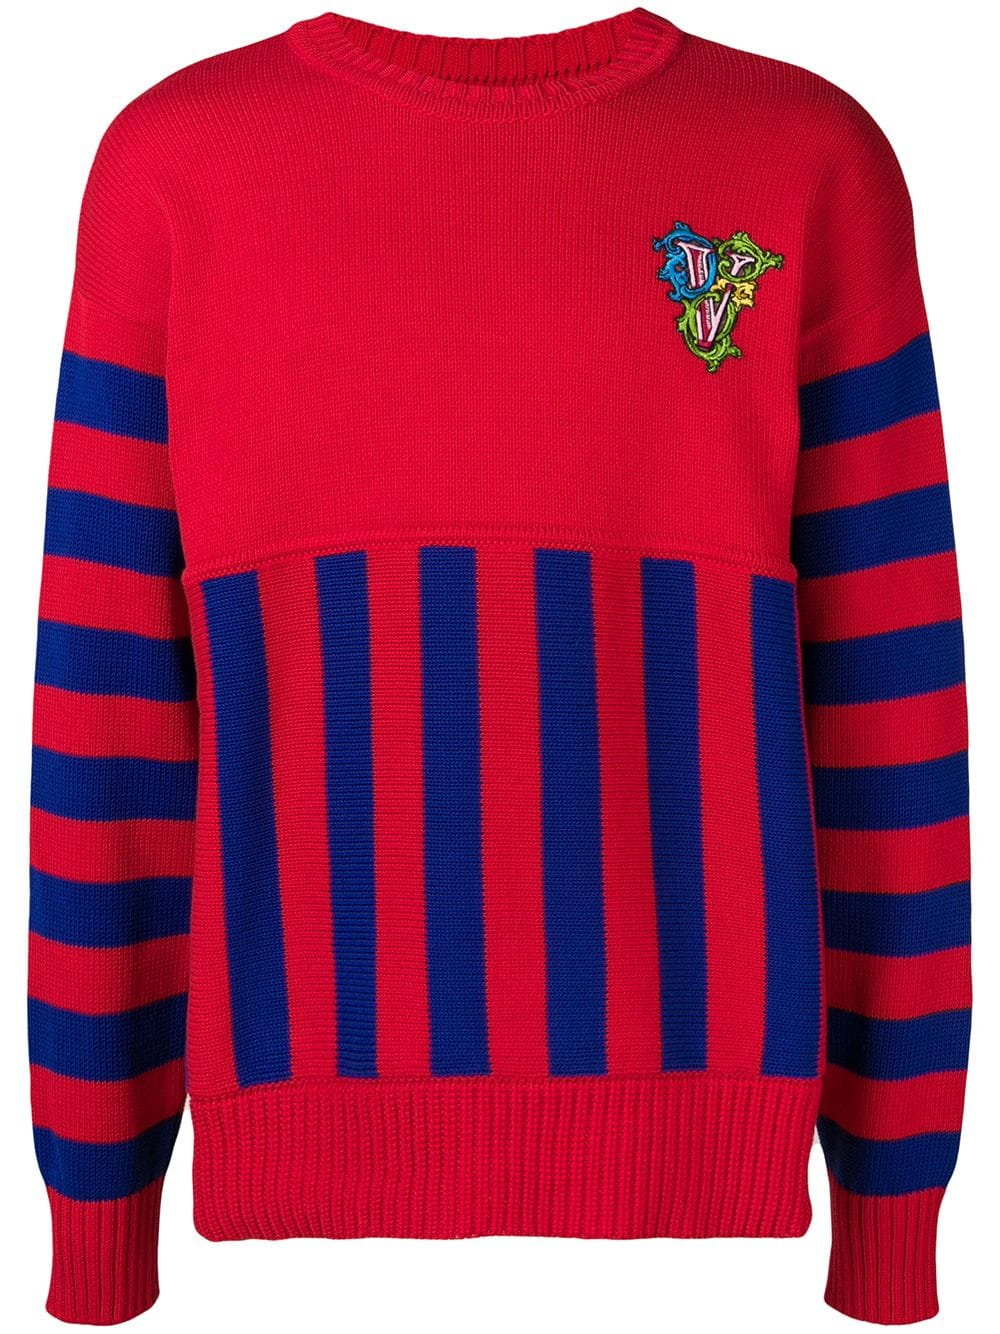 cec76c05f5 Versace crew neck panelled sweater - Red in 2019 | Products ...